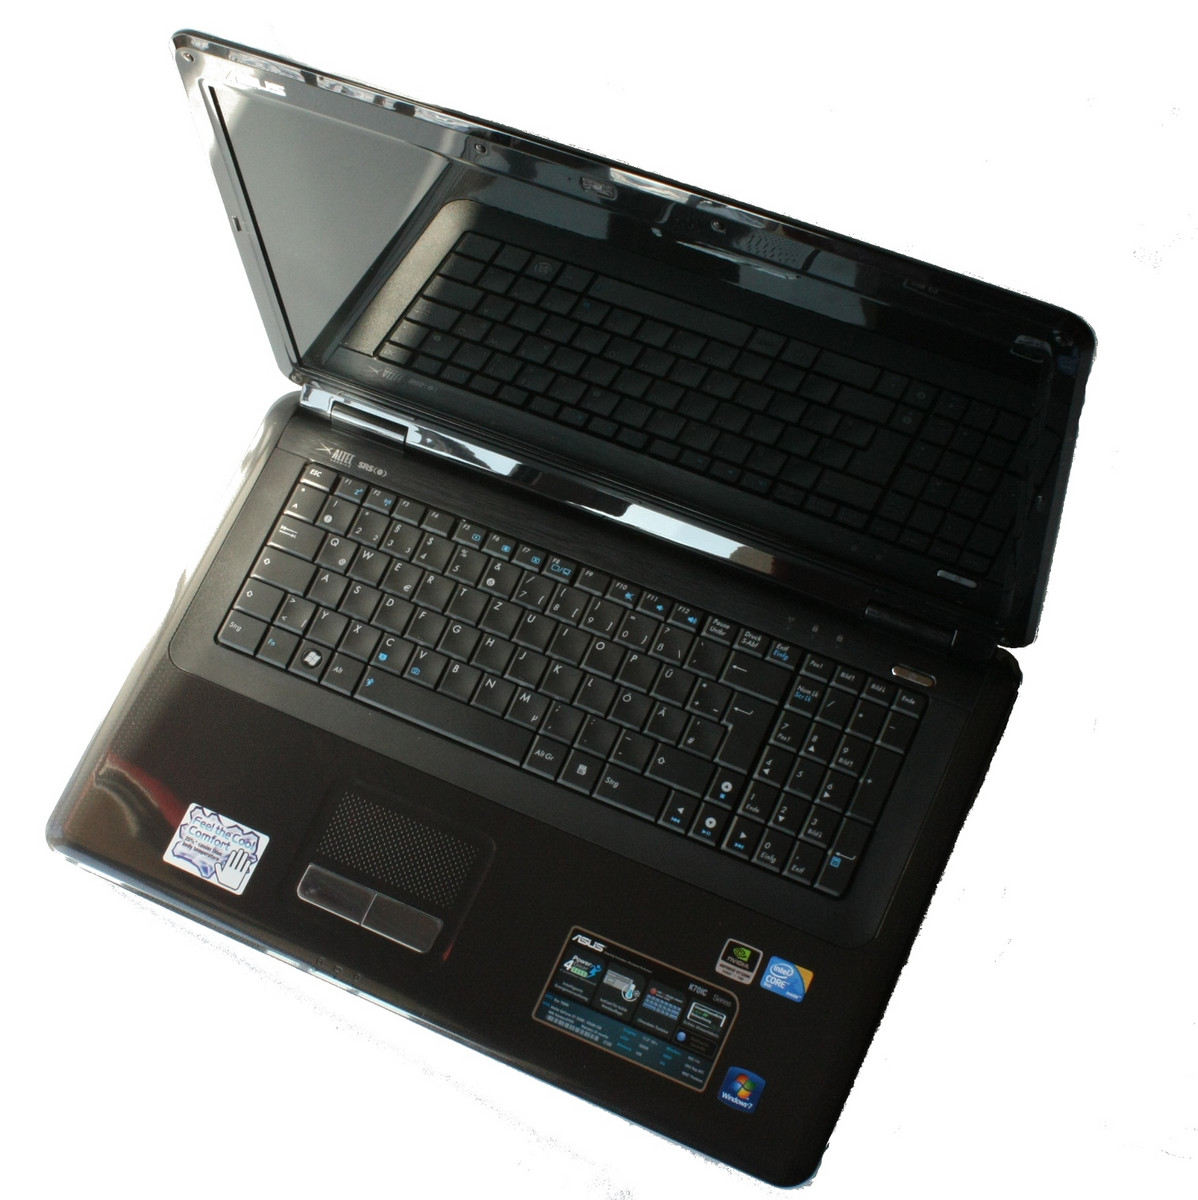 Asus K70AB Notebook Windows 7